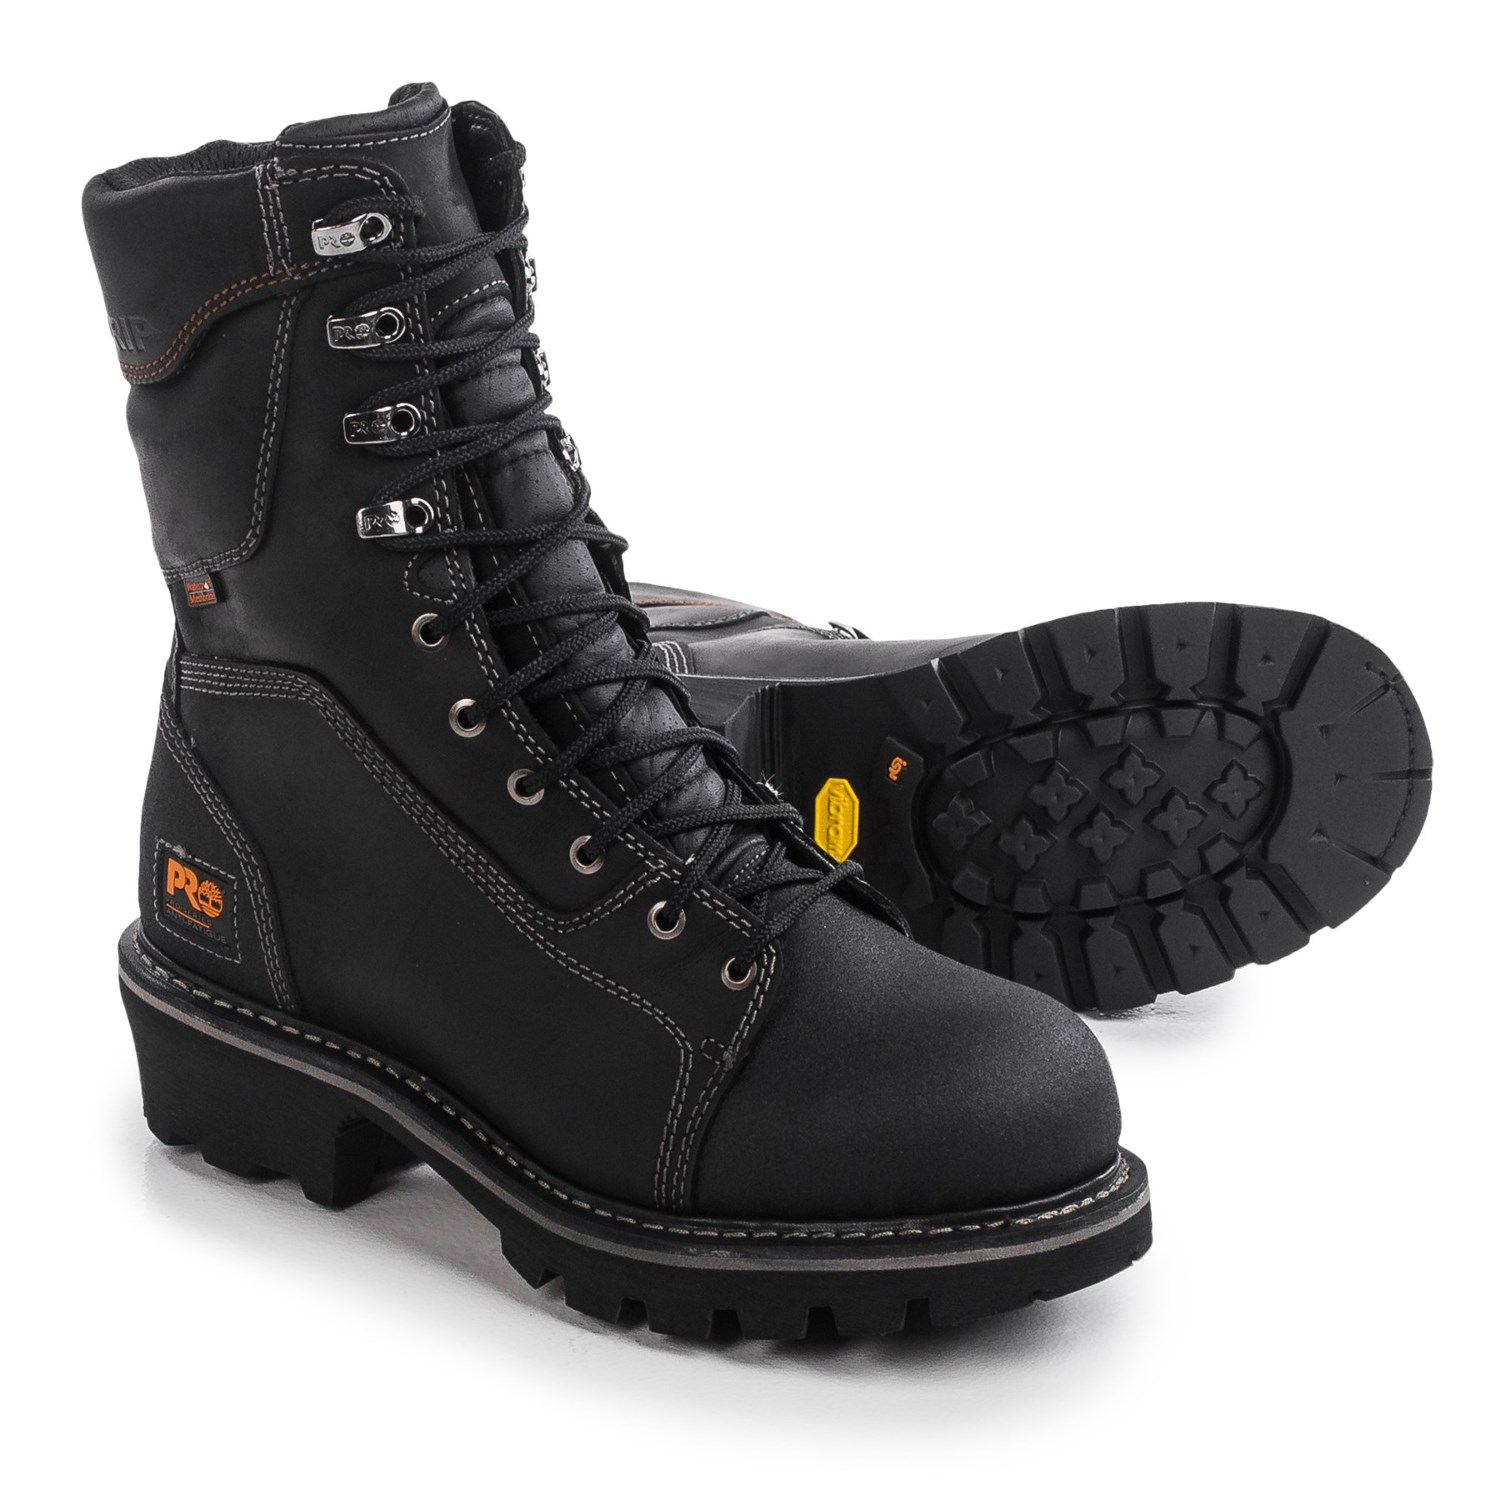 Timberland Pro Rip Saw Soft Toe Logger Work Boots For Men